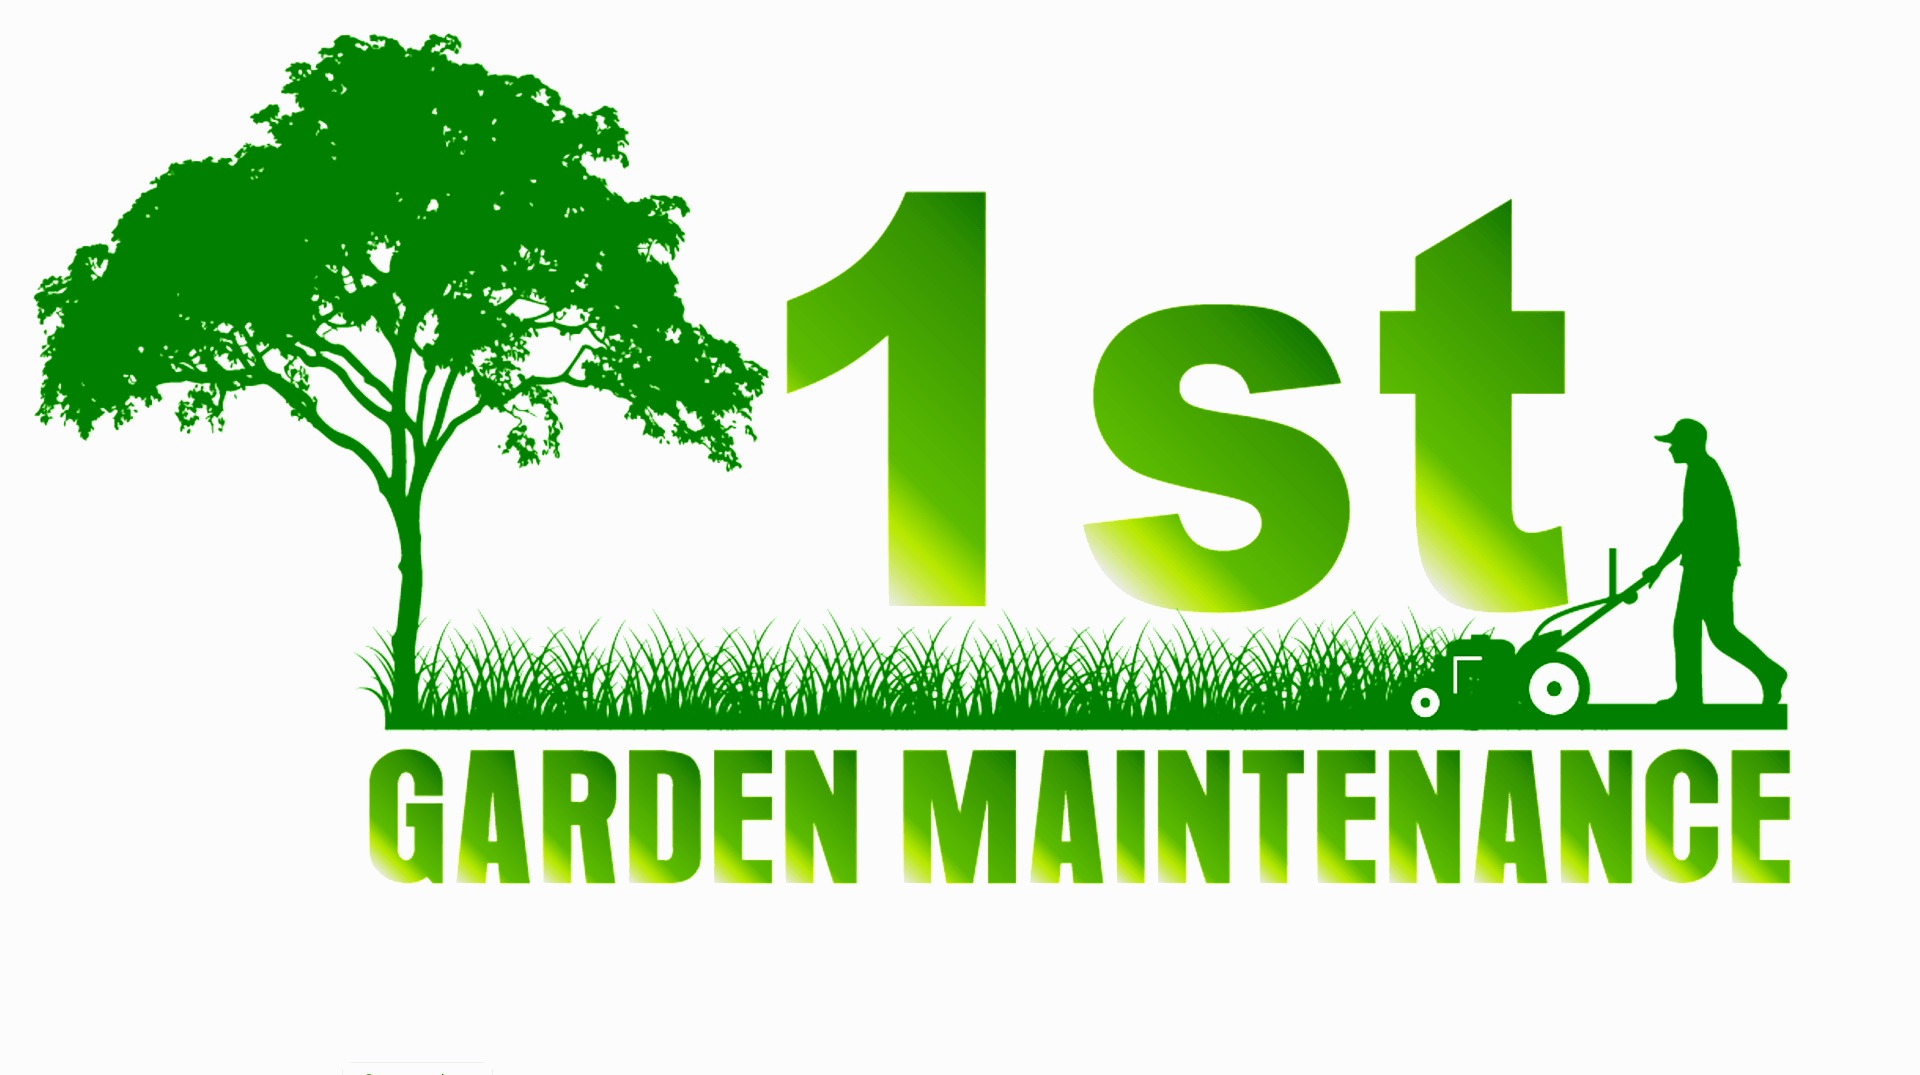 1st Garden Maintenance